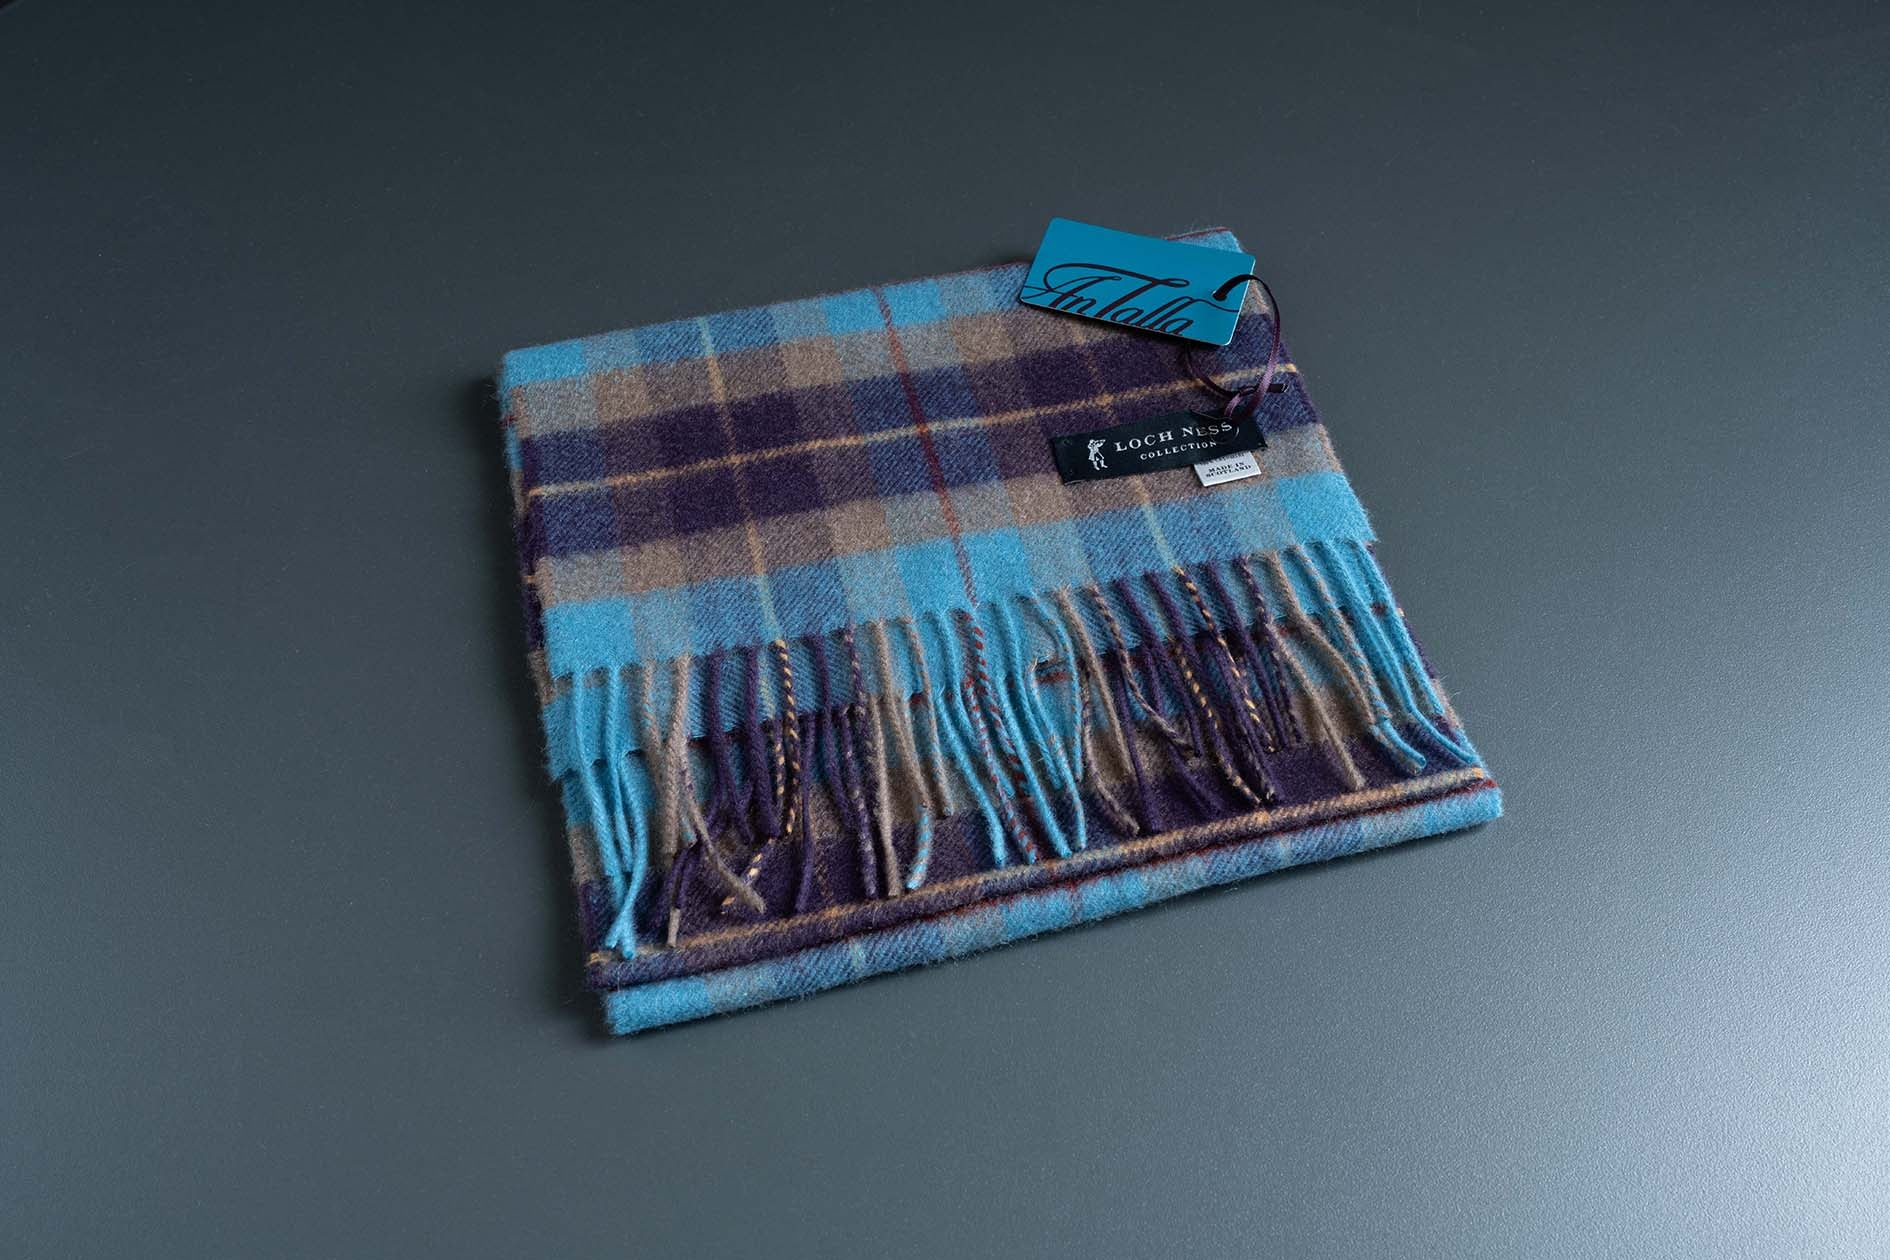 Loch Ness Collection Cashmere Scarf